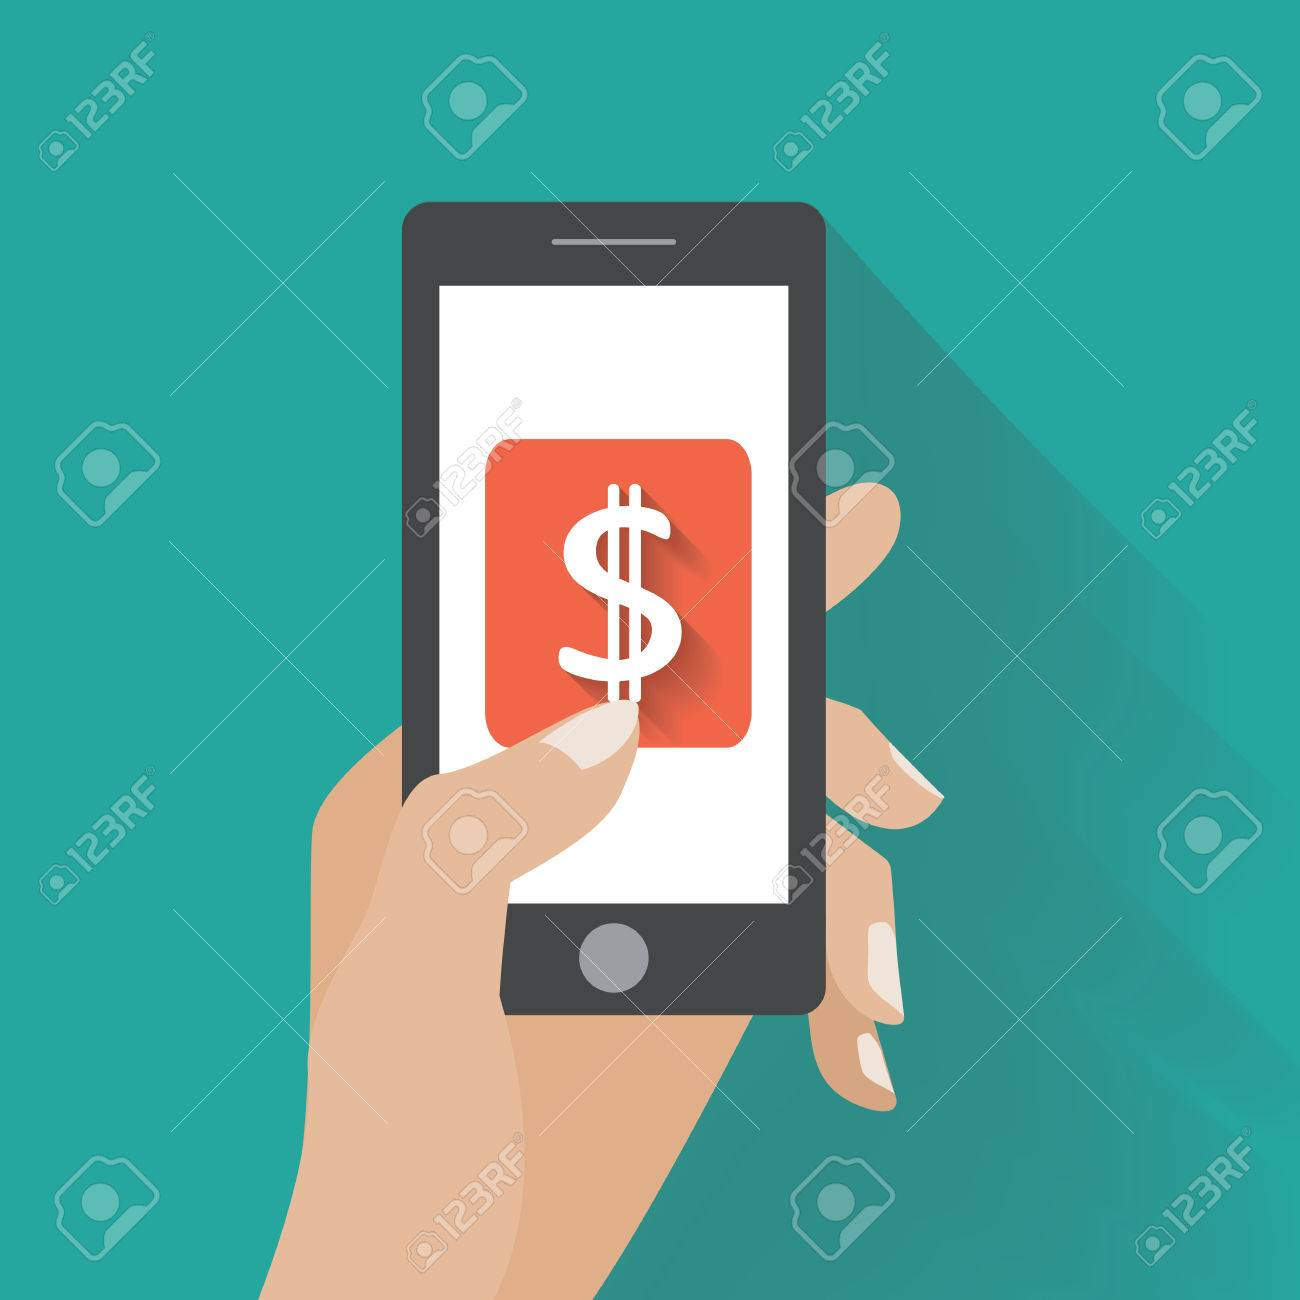 Hand touching smartphone with dollar sign on the screen. Using mobile smart phone silimar to iphon, flat design concept. - 32514723